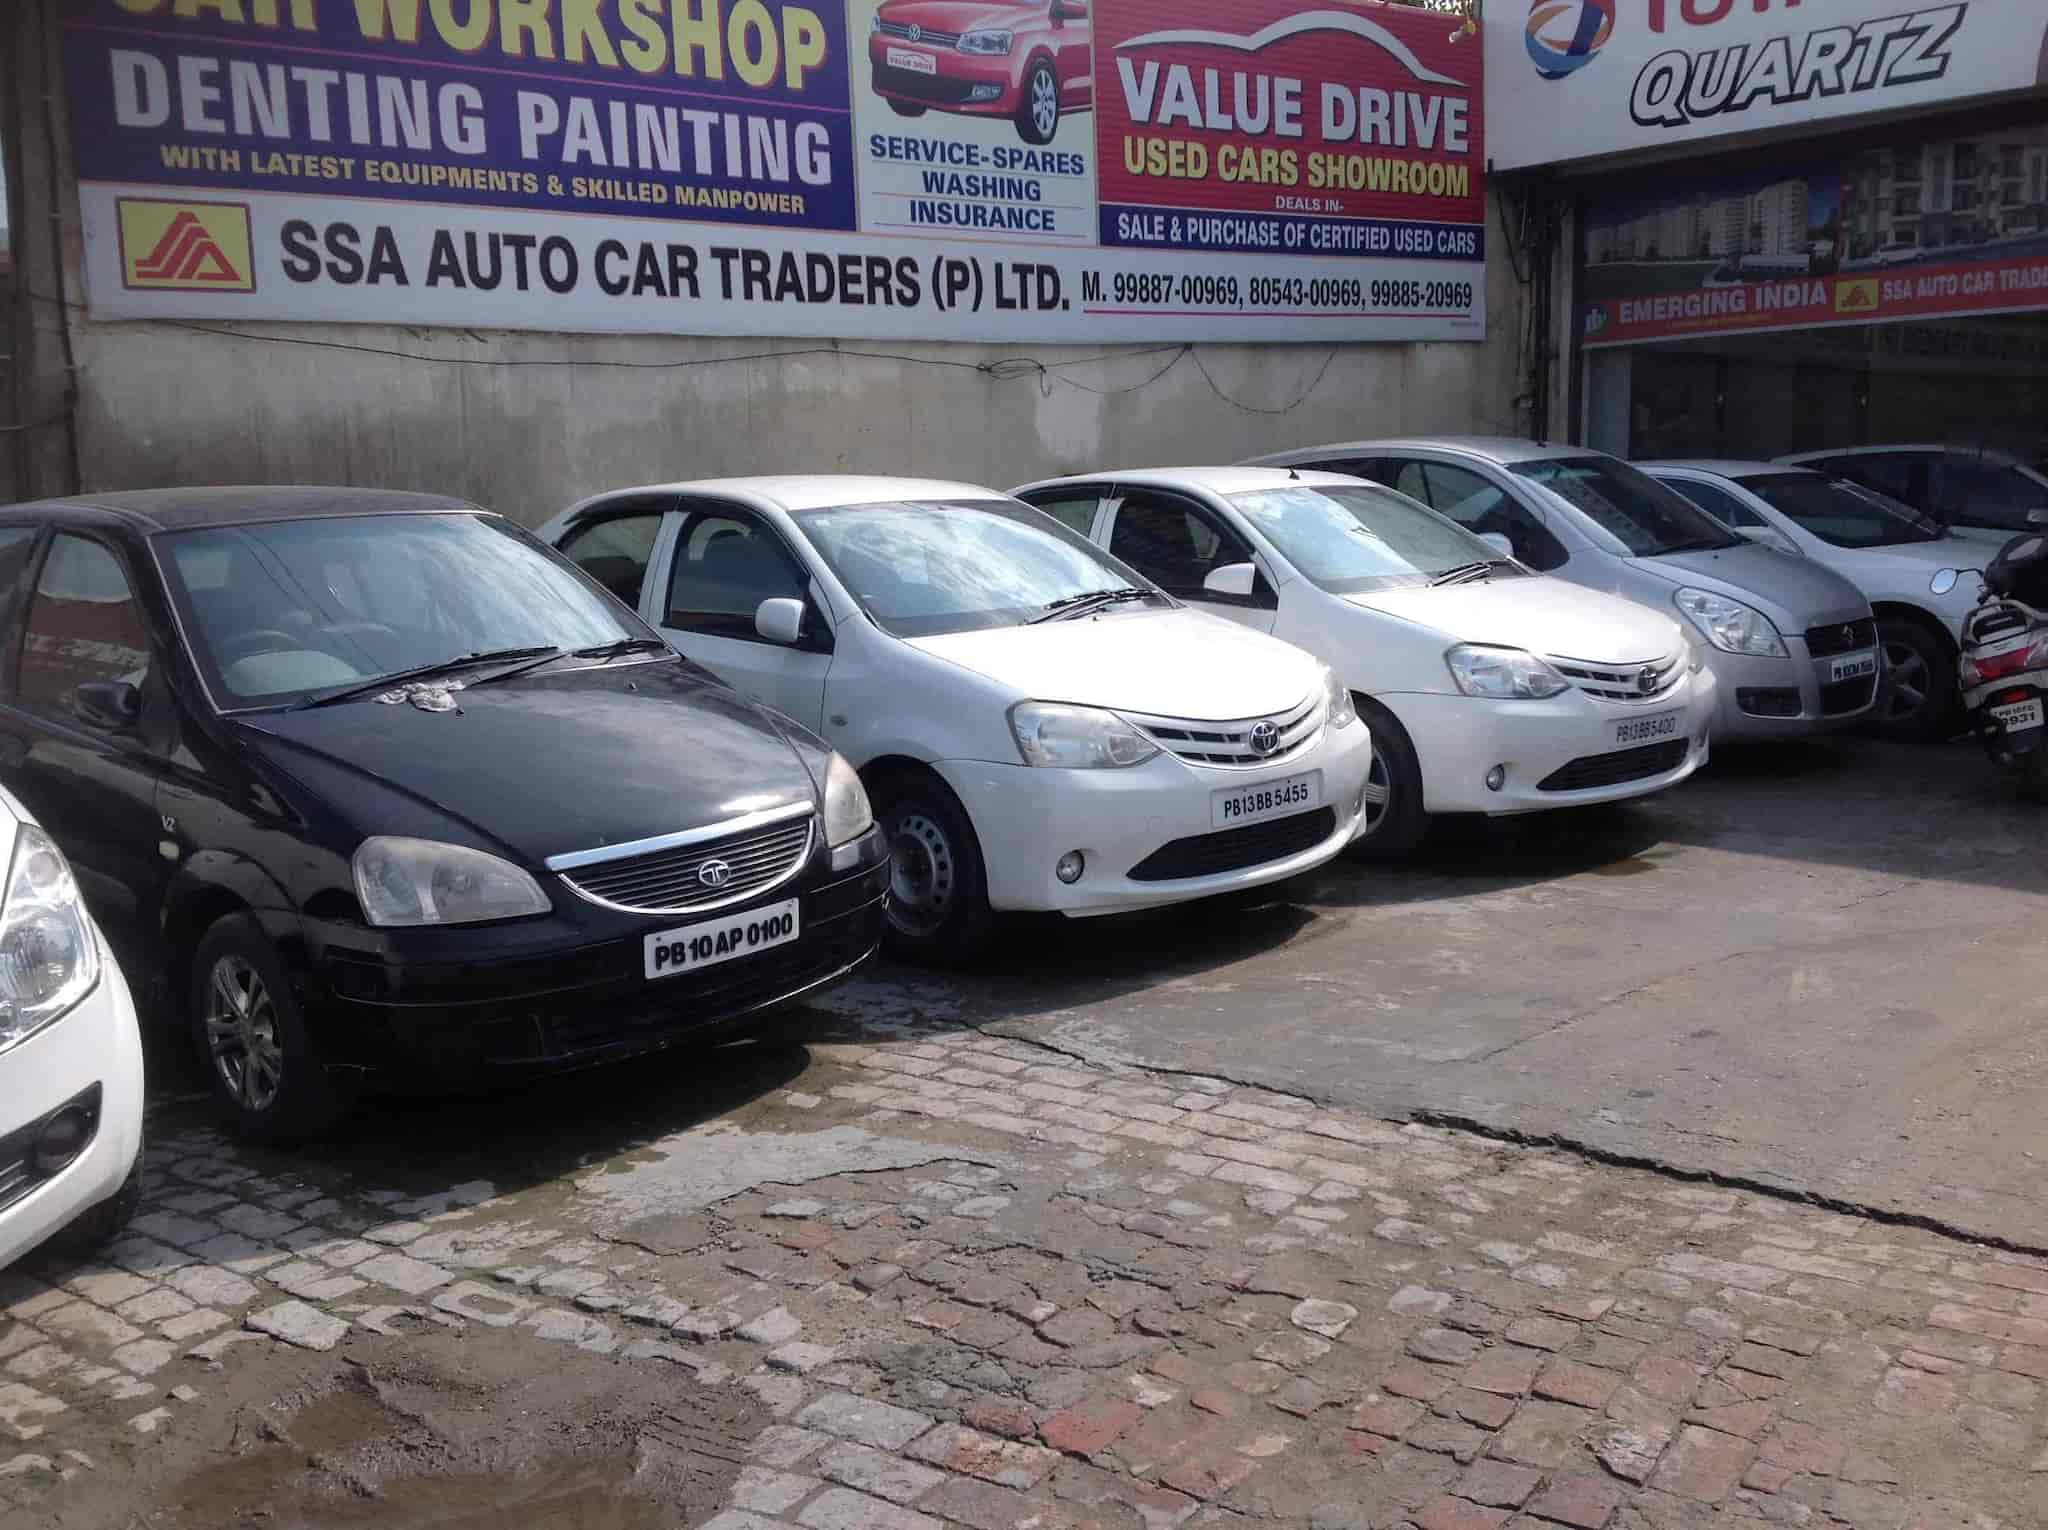 Ssa Auto Car Trader Pvt Ltd Photos Gill Road Ludhiana Pictures